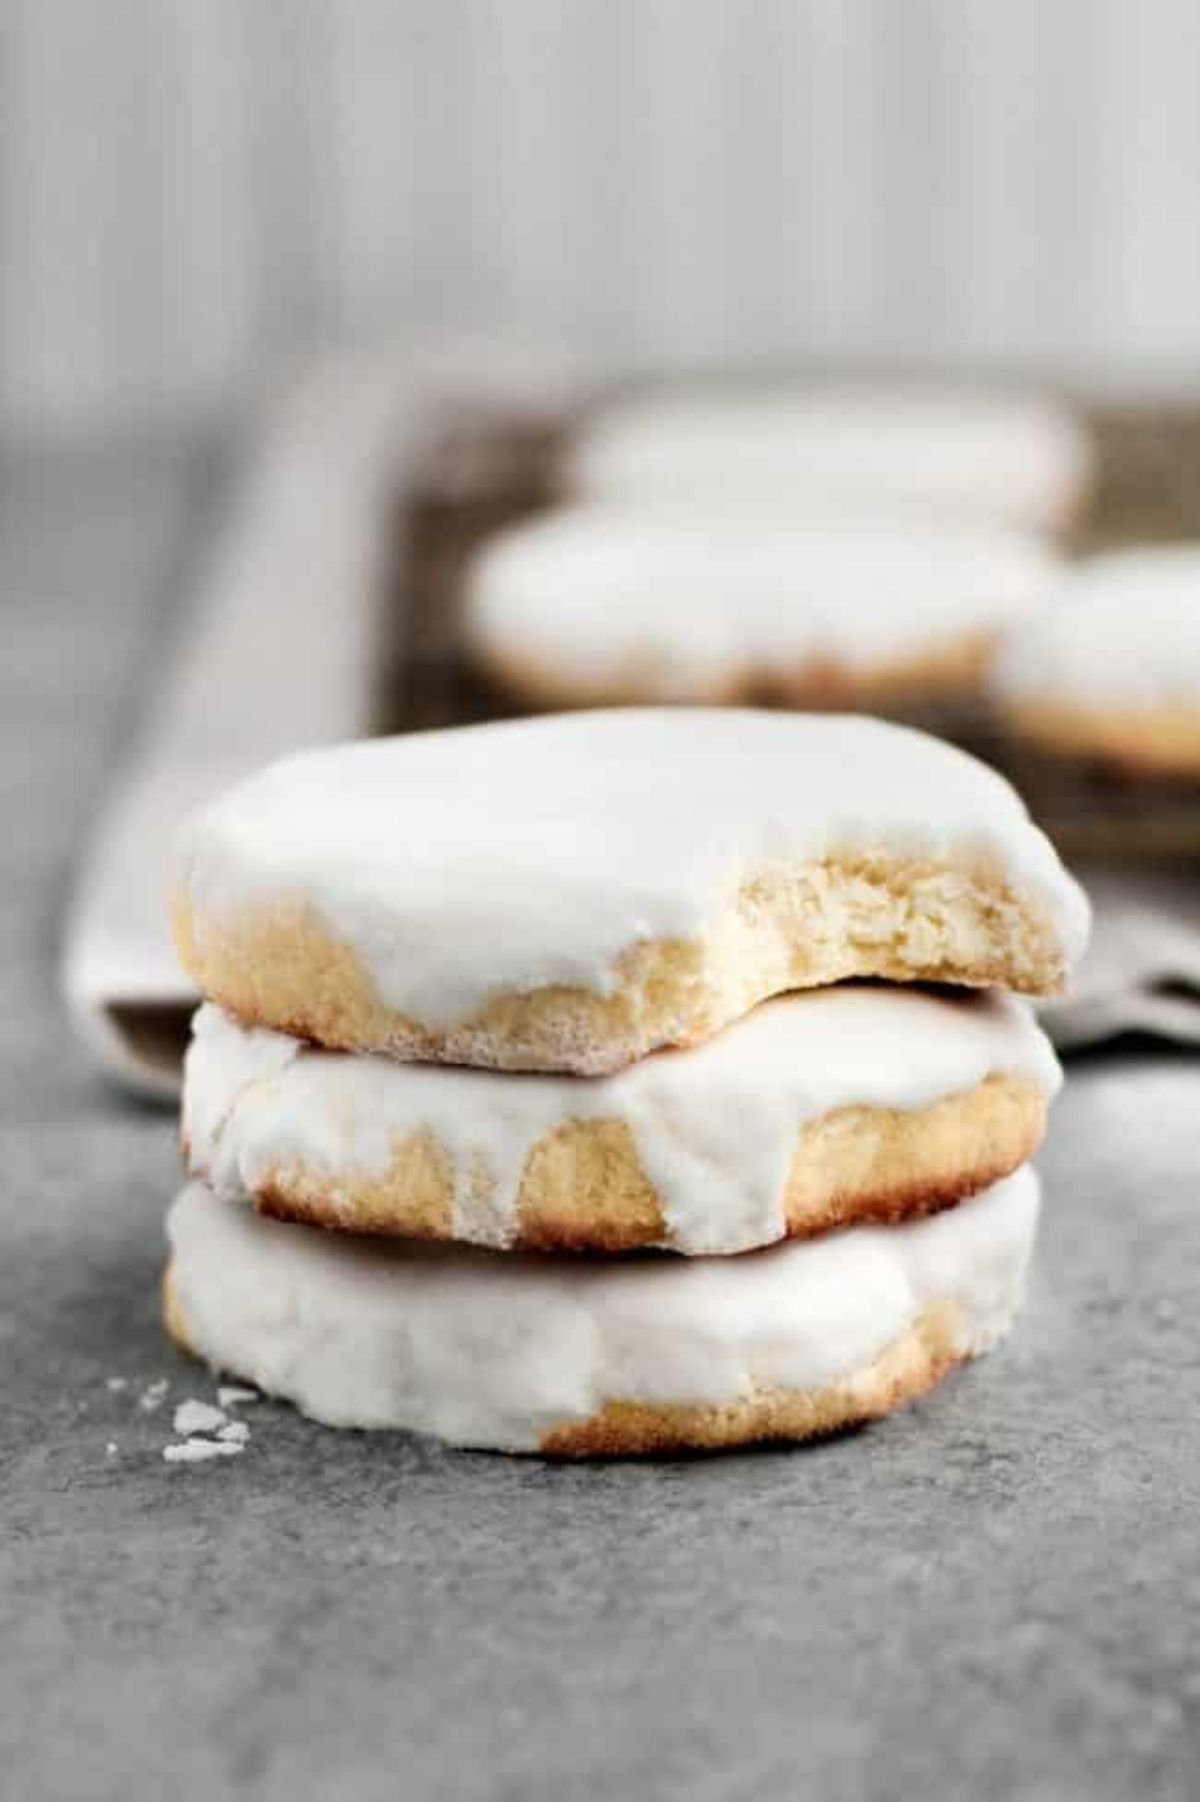 A pile of 3 iced sugar cookies